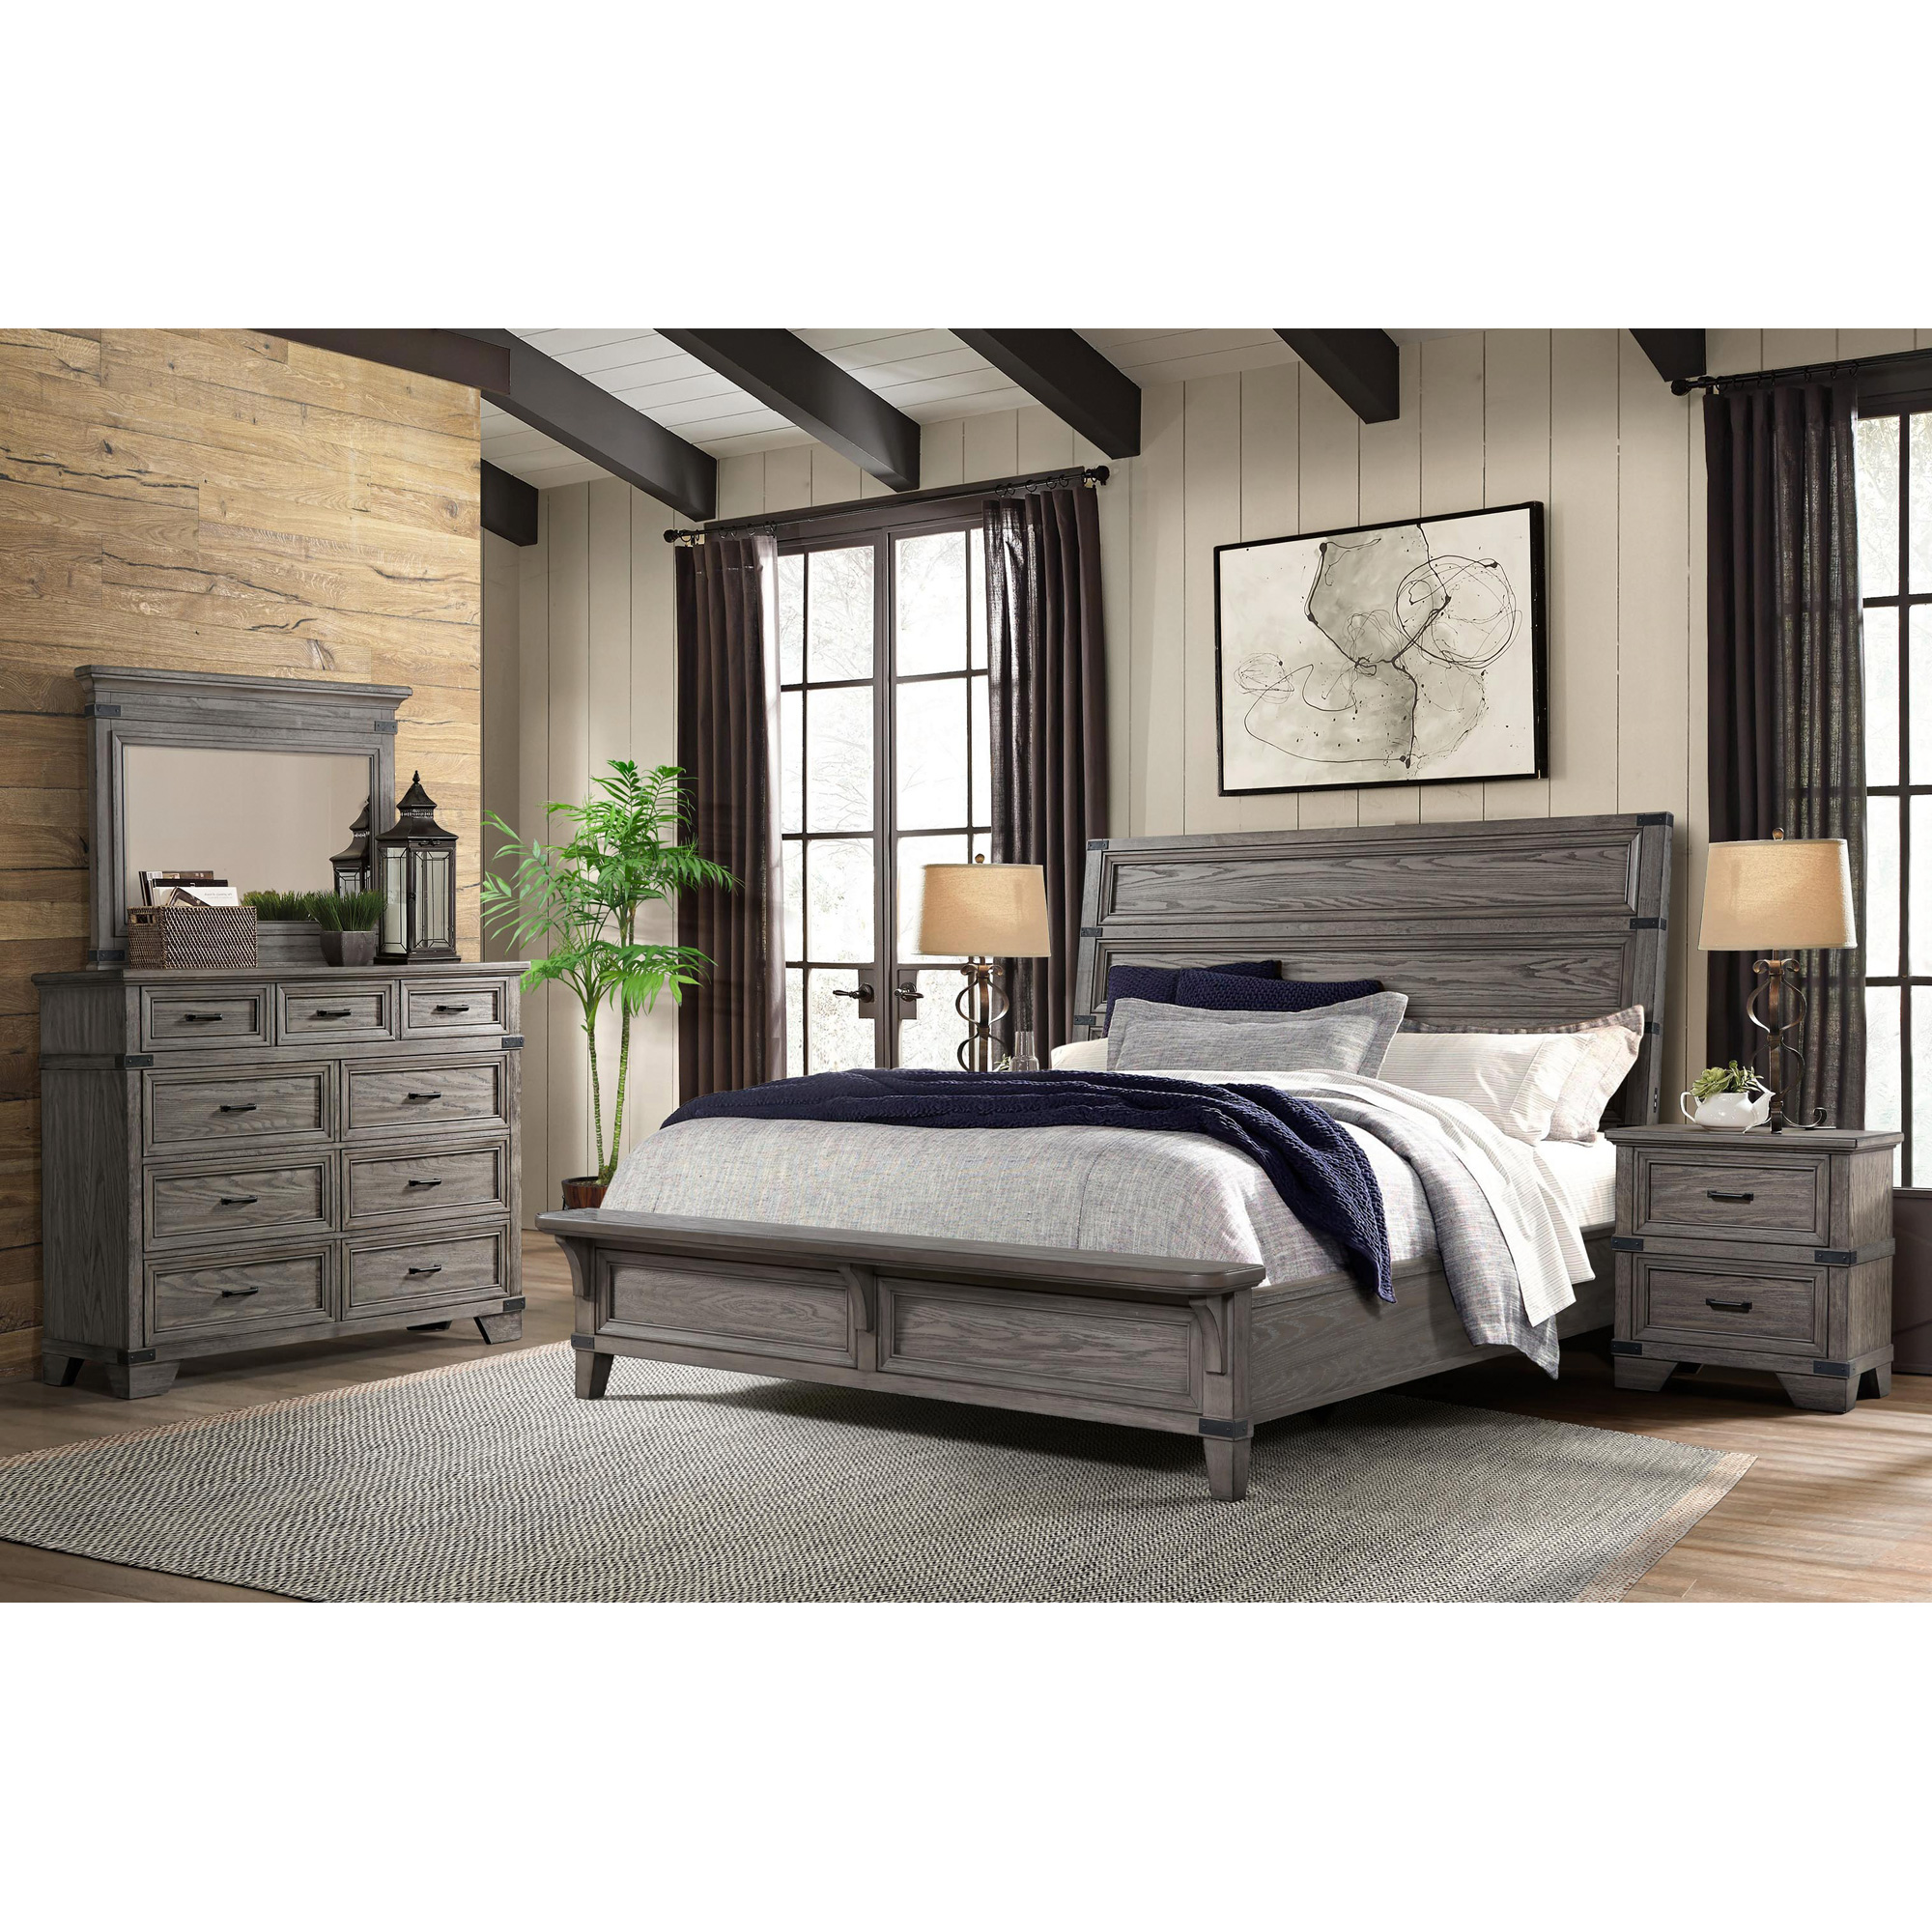 Intercon | Forge Brushed Steel King 4 Piece Room Group Bedroom Set